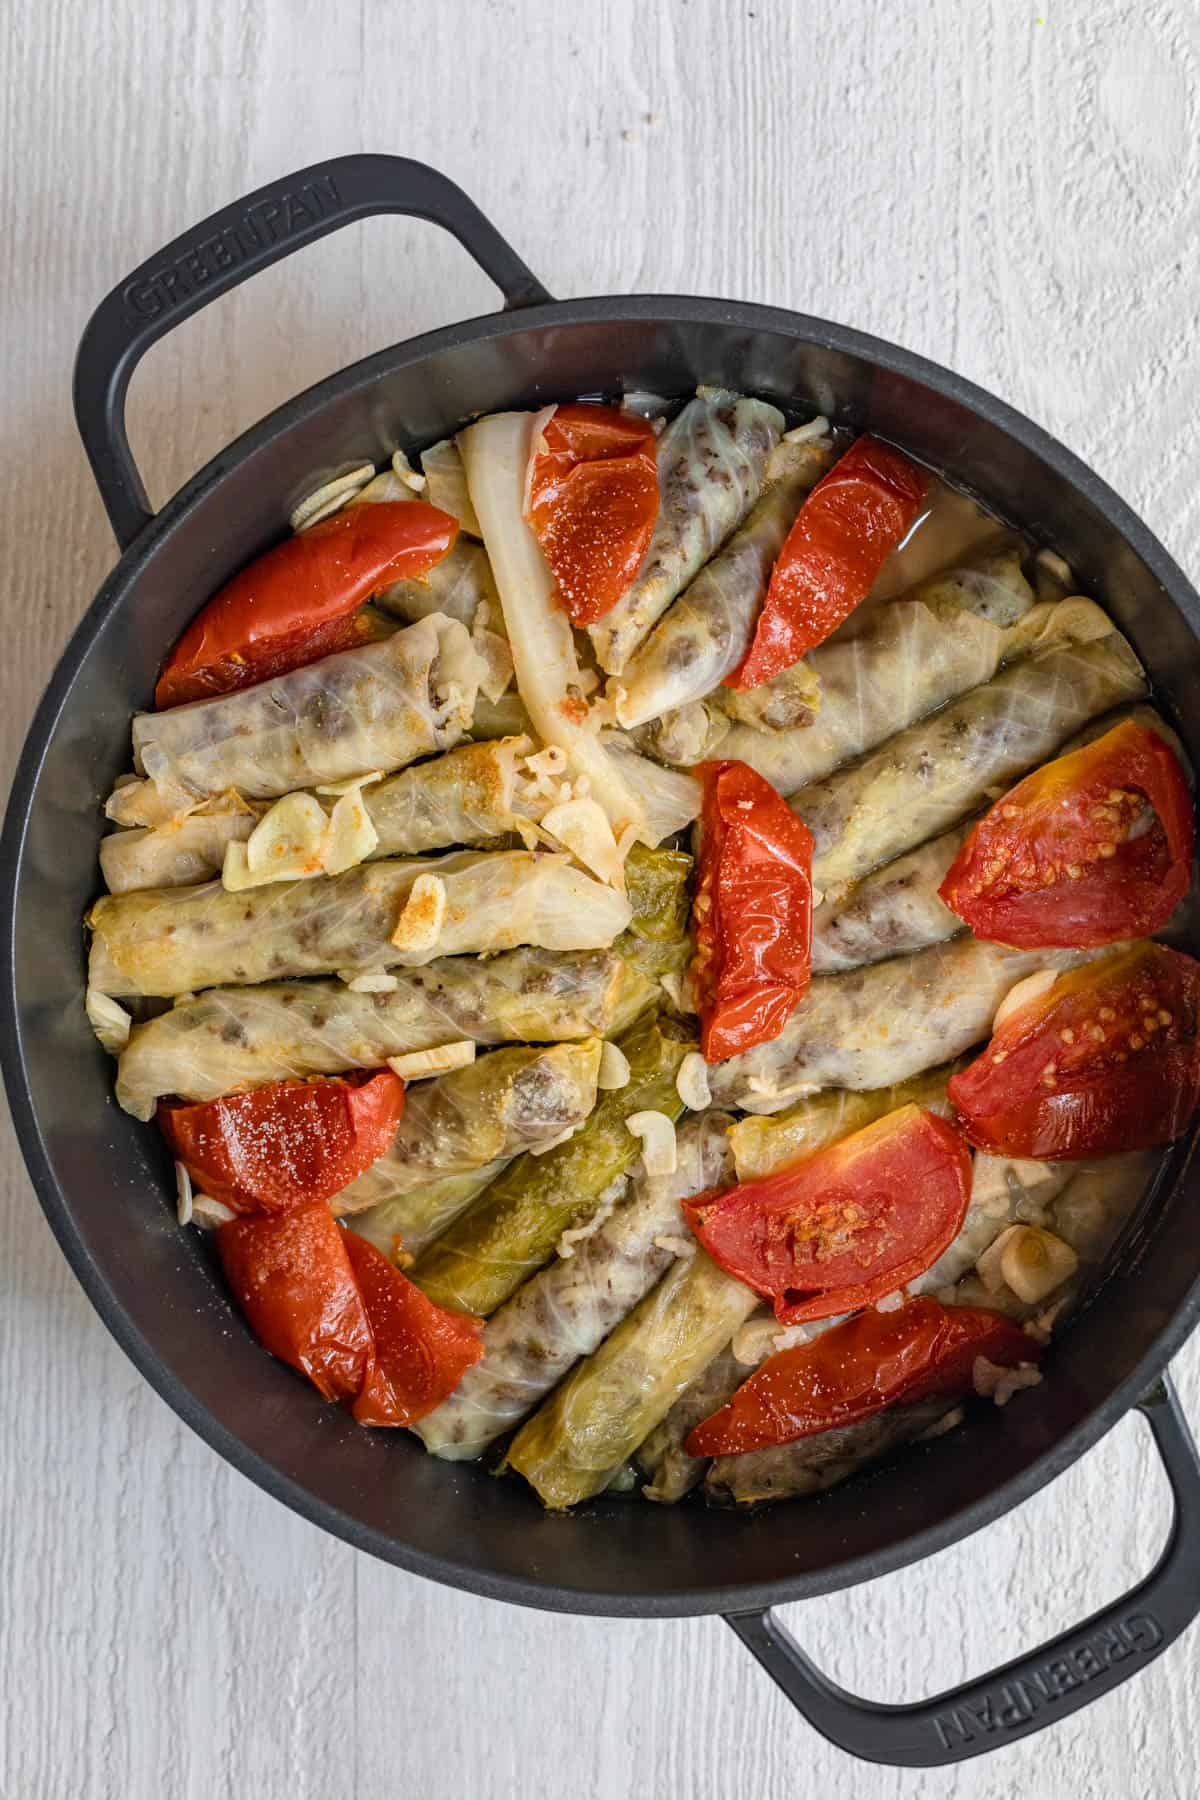 Showing the alternating layers of stuffed cabbage in a large pot with garlic, tomato slices and green peppers